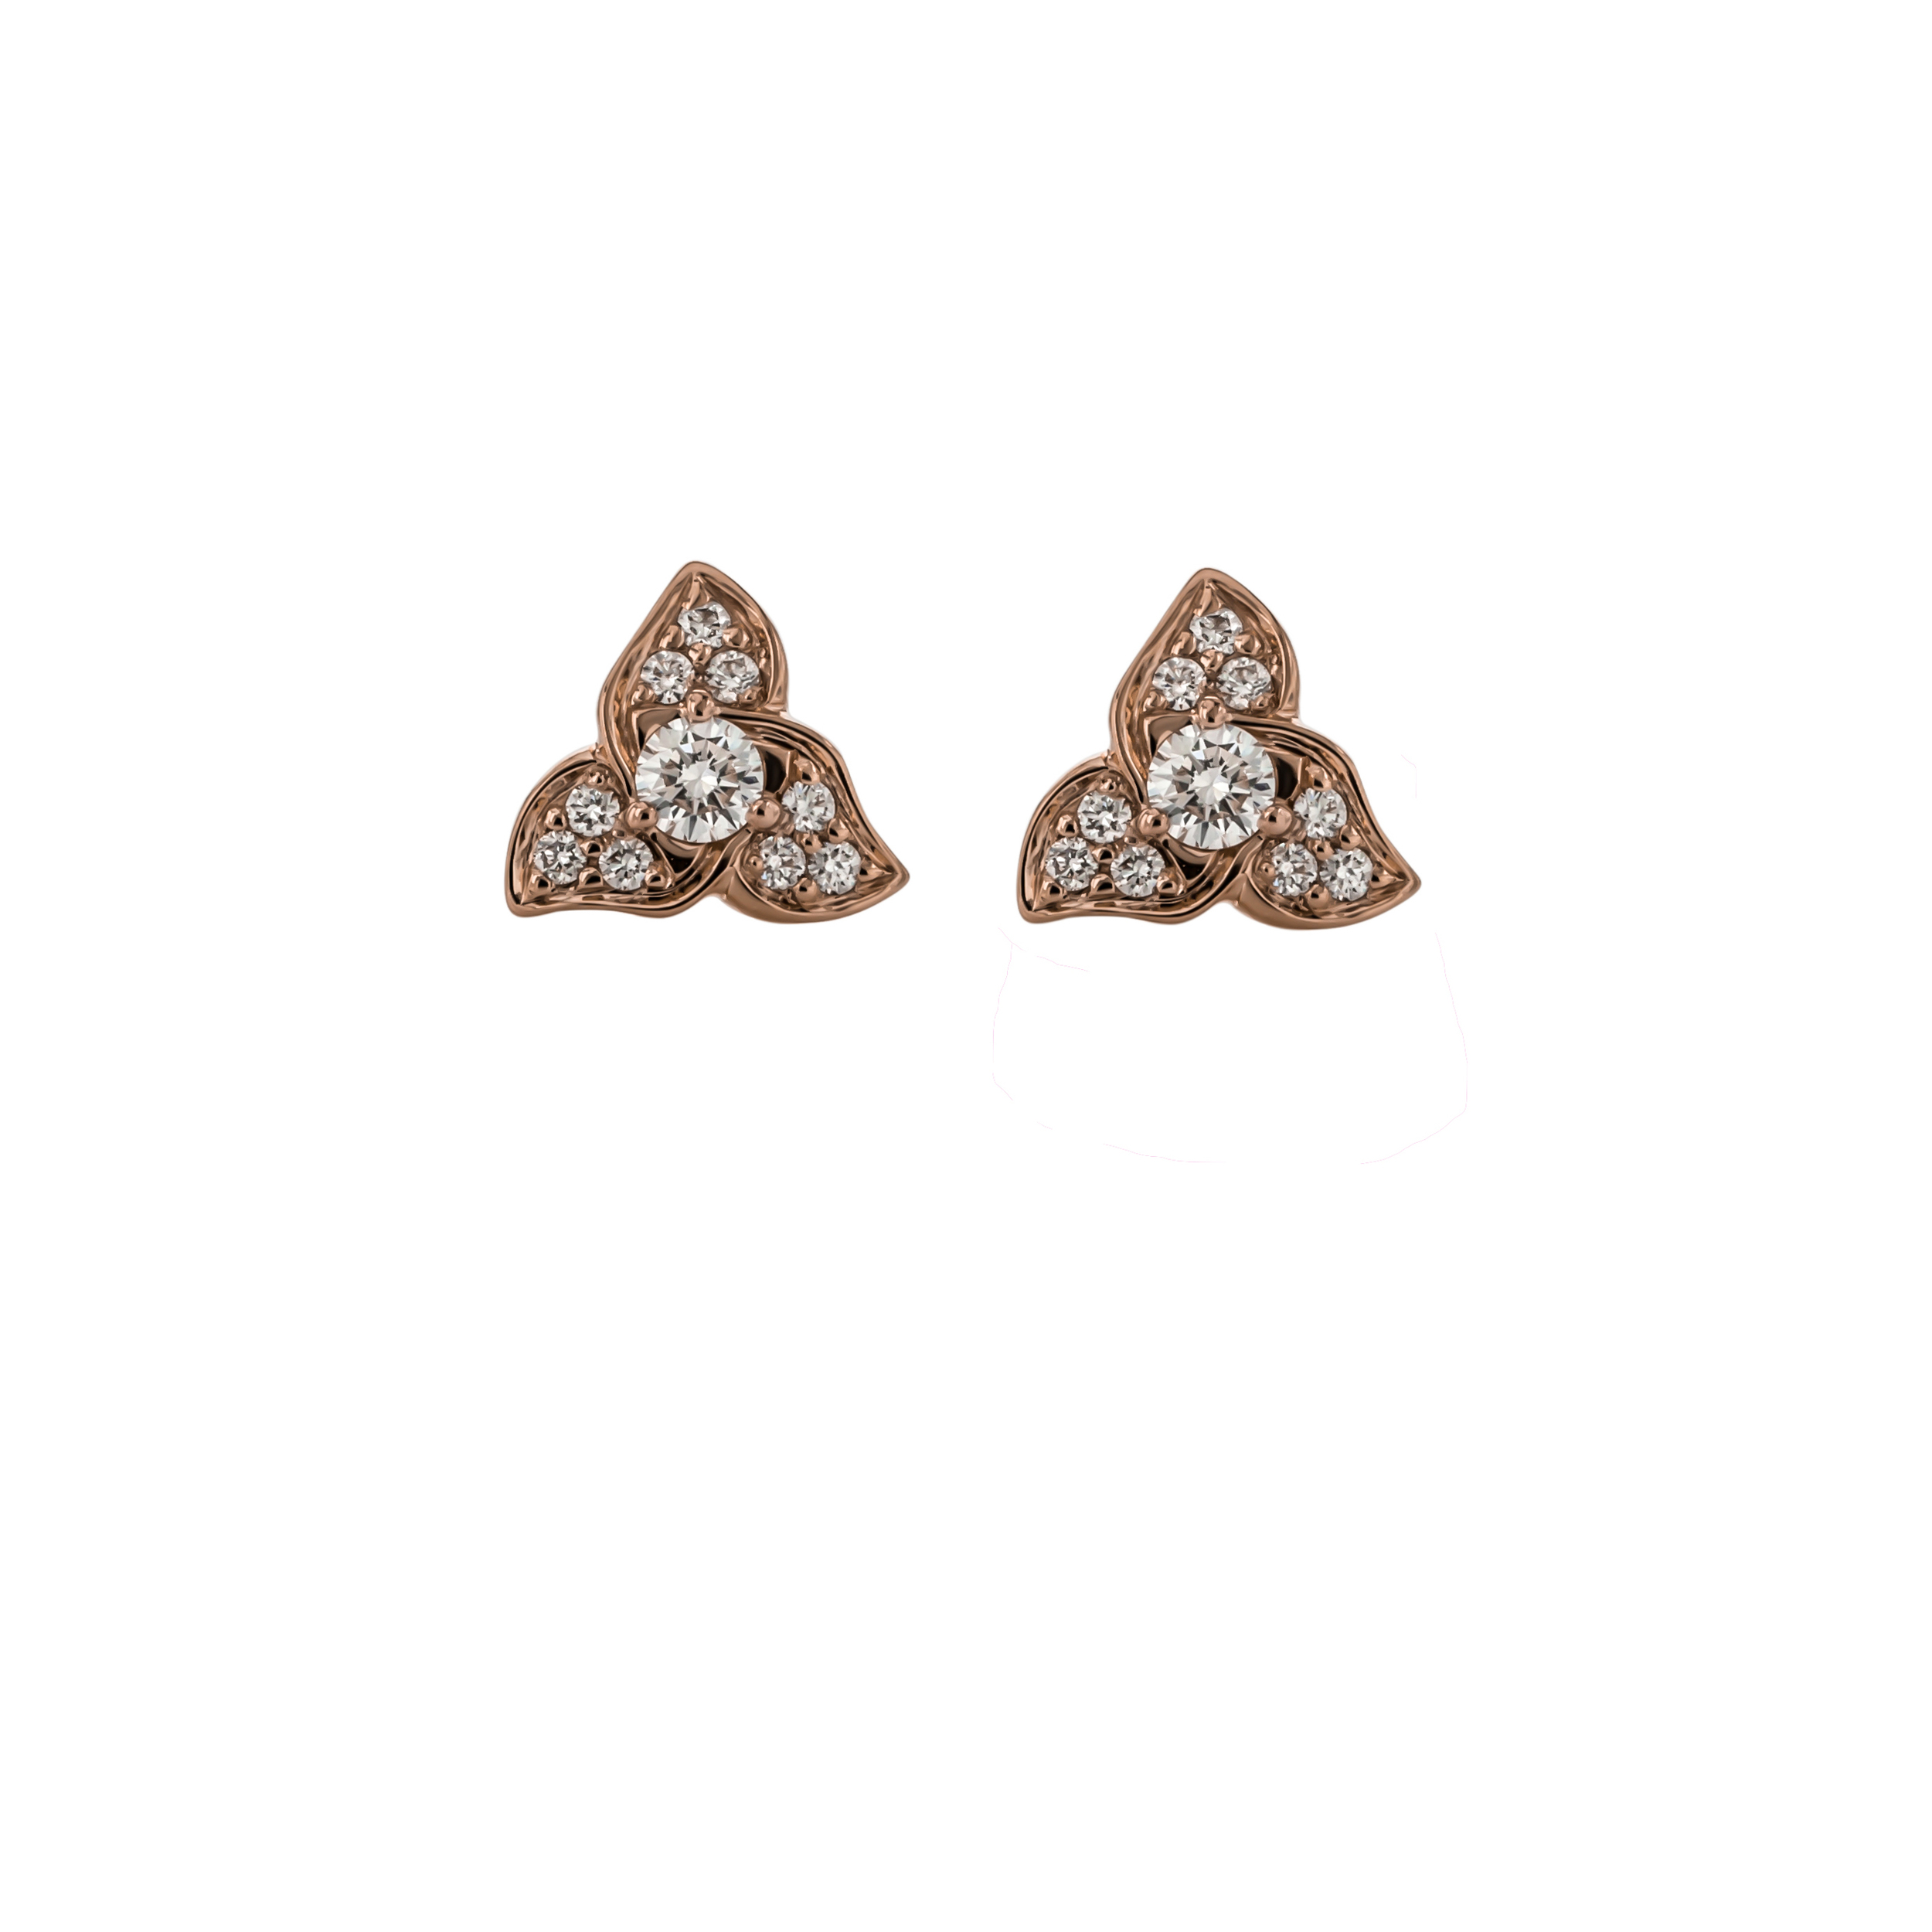 CUSTOM DIAMOND EARRINGS SET IN 18K ROSE GOLD